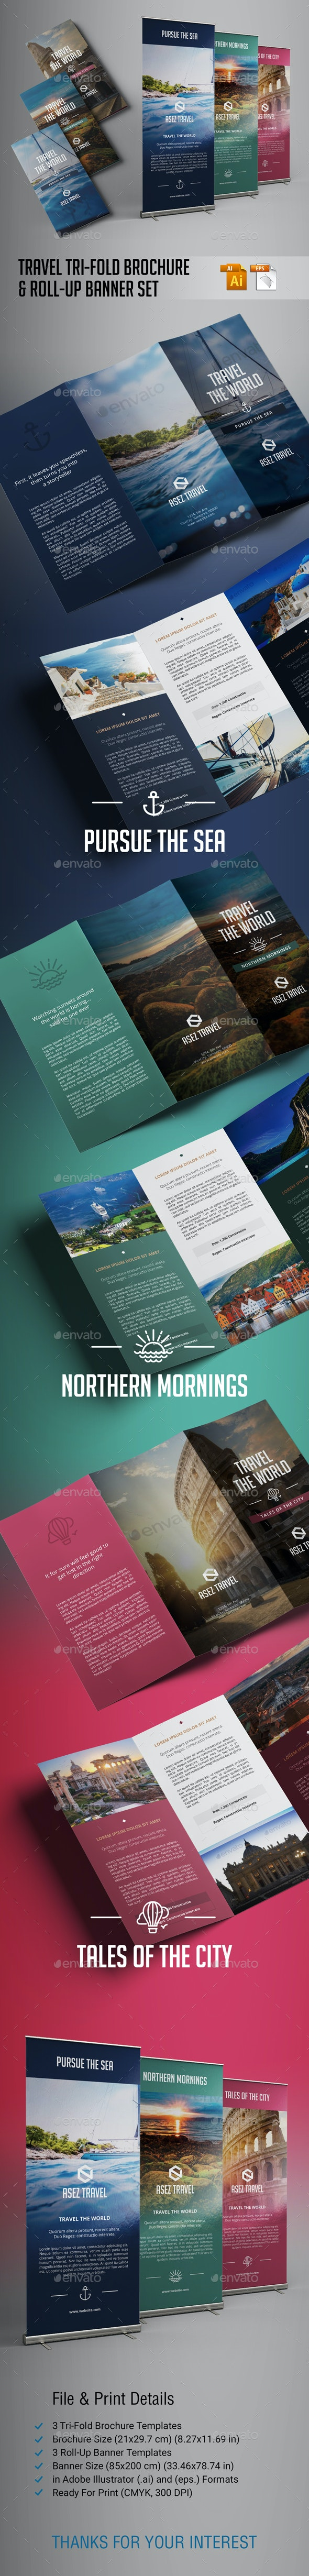 Travel Brochure and Banner Set by sezginavci91 | GraphicRiver